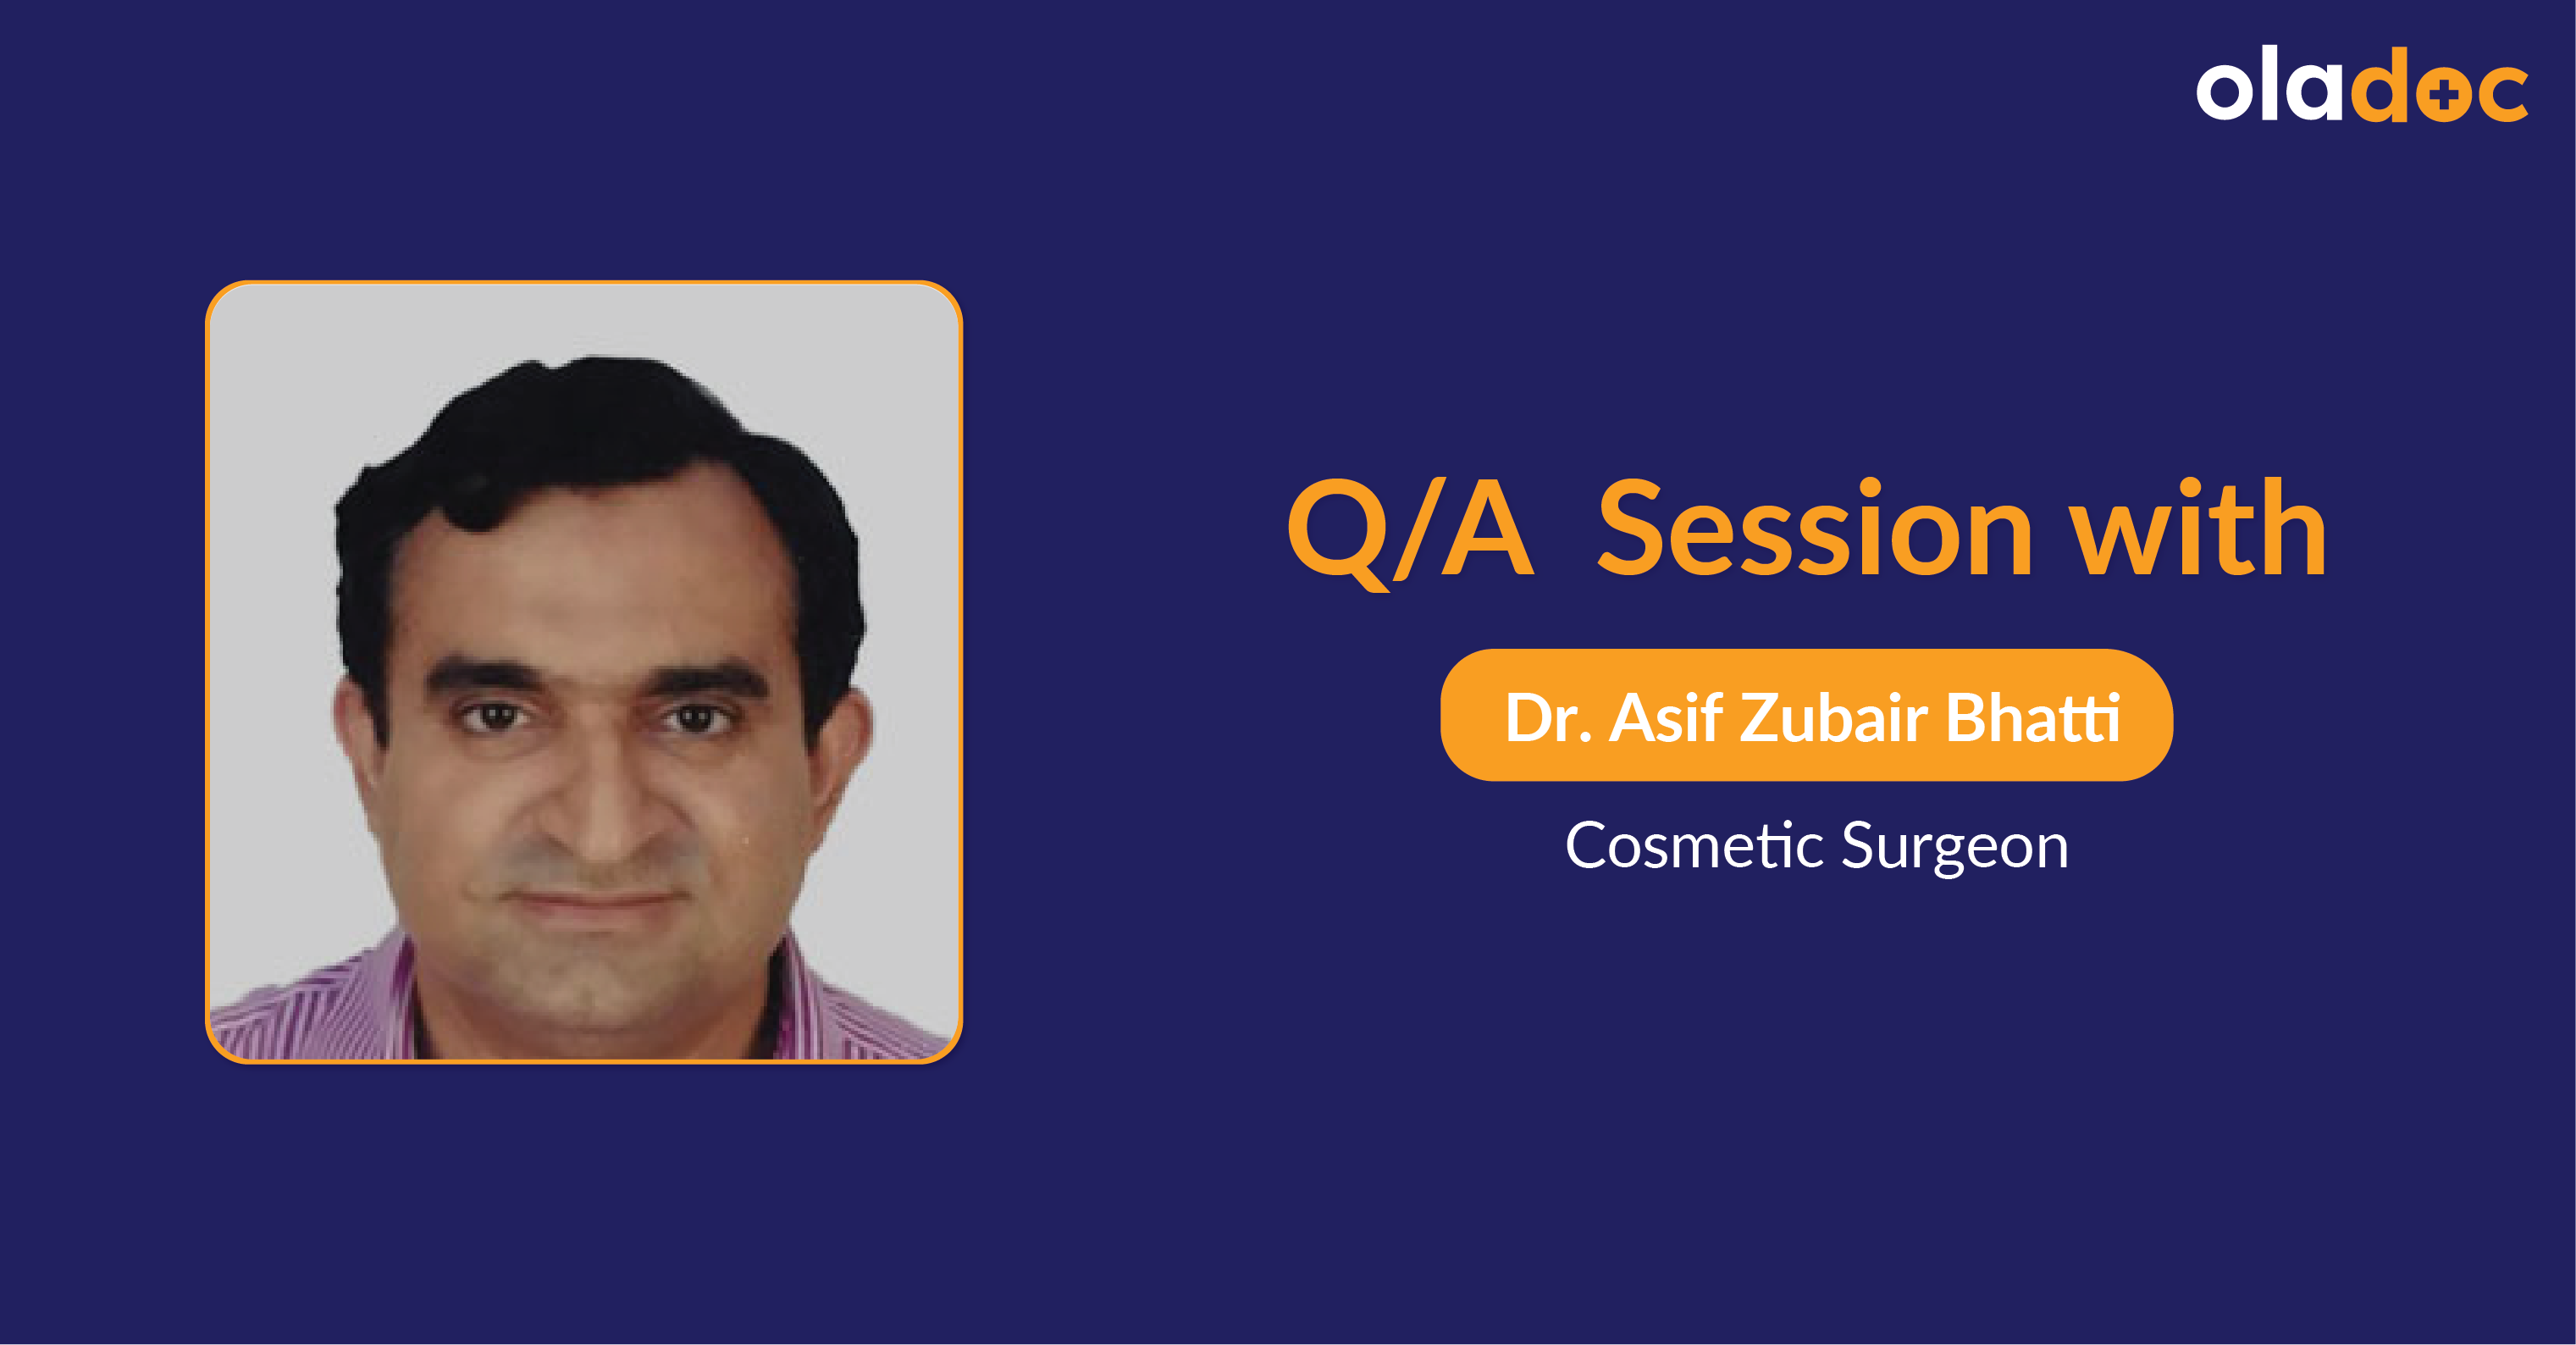 Burns and Facial Scars Treatment: Q and A with Dr. Asif Zubair Bhatti